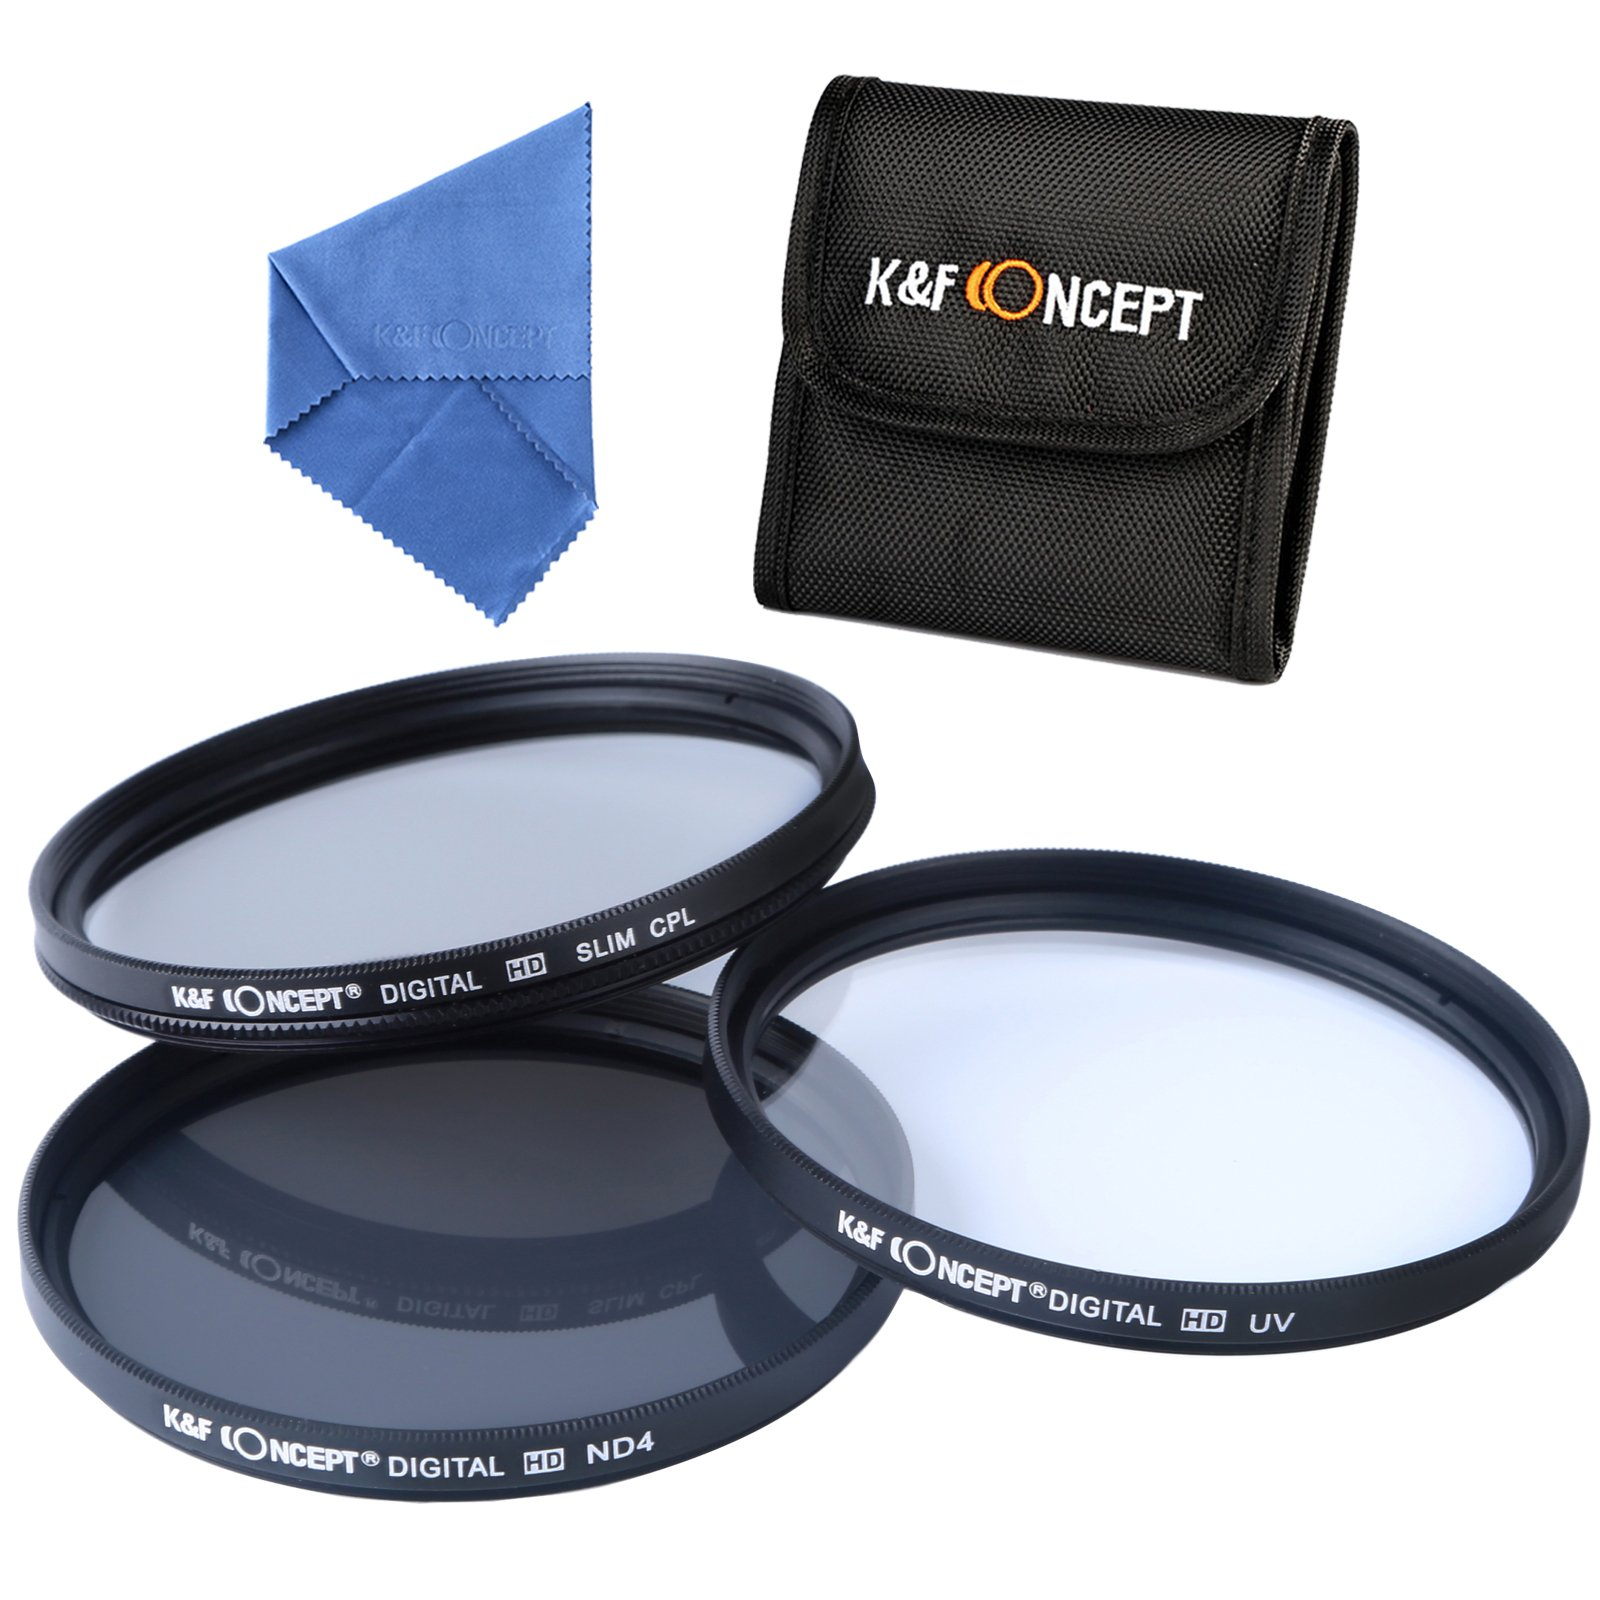 K&F Concept 52mm Professional Photography Filter Kit (UV, CPL Polarizer, Neutral Density ND4) for Camera Lens + Filter Case + Cleaning Cloth